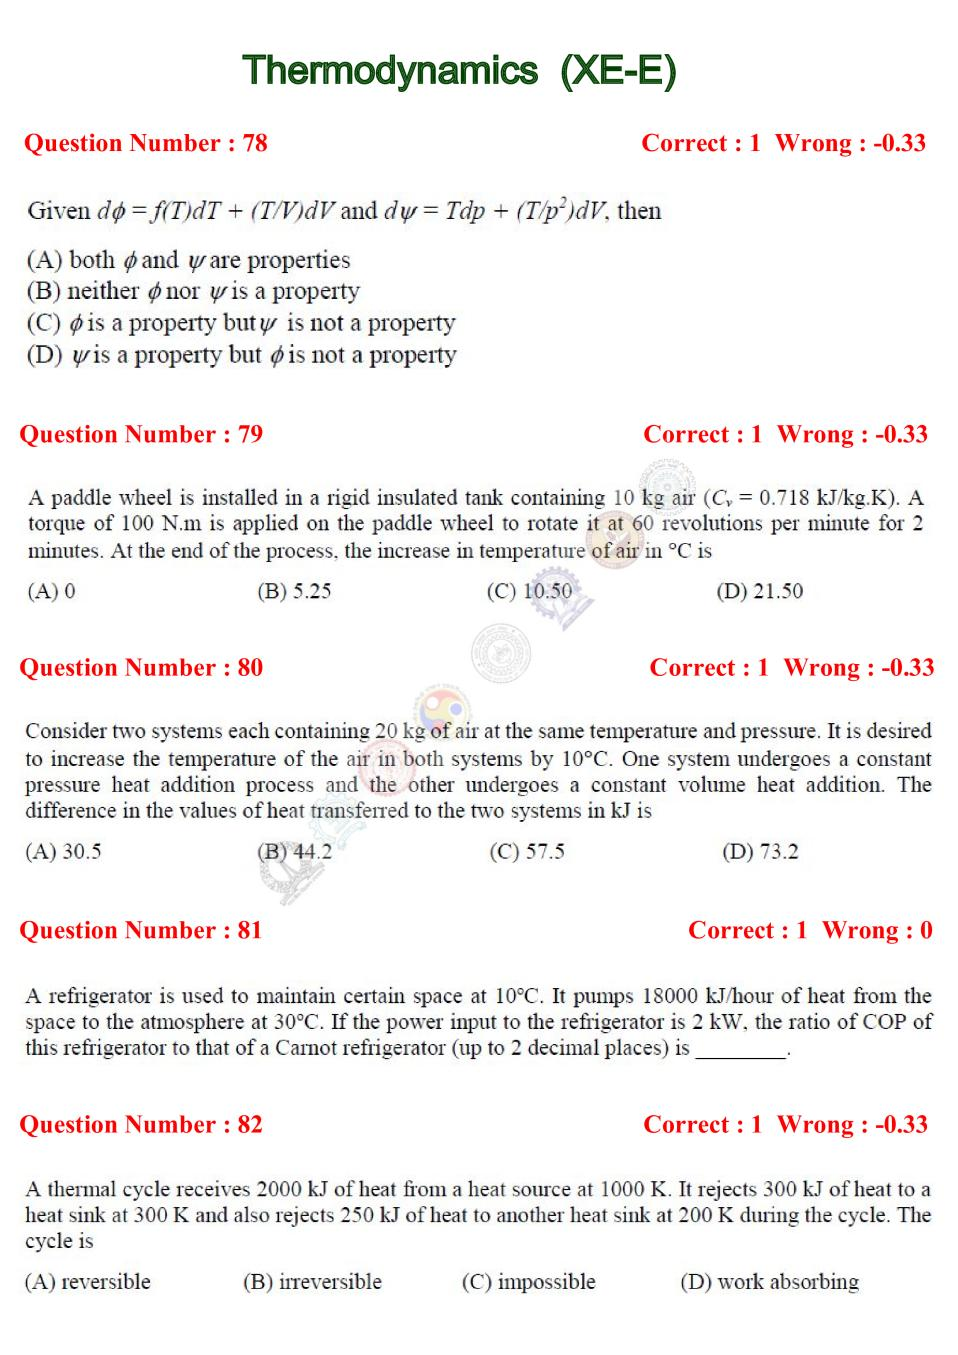 GATE 2017 Thermodynamics (XE-E) Question Paper with Answer - Page 1